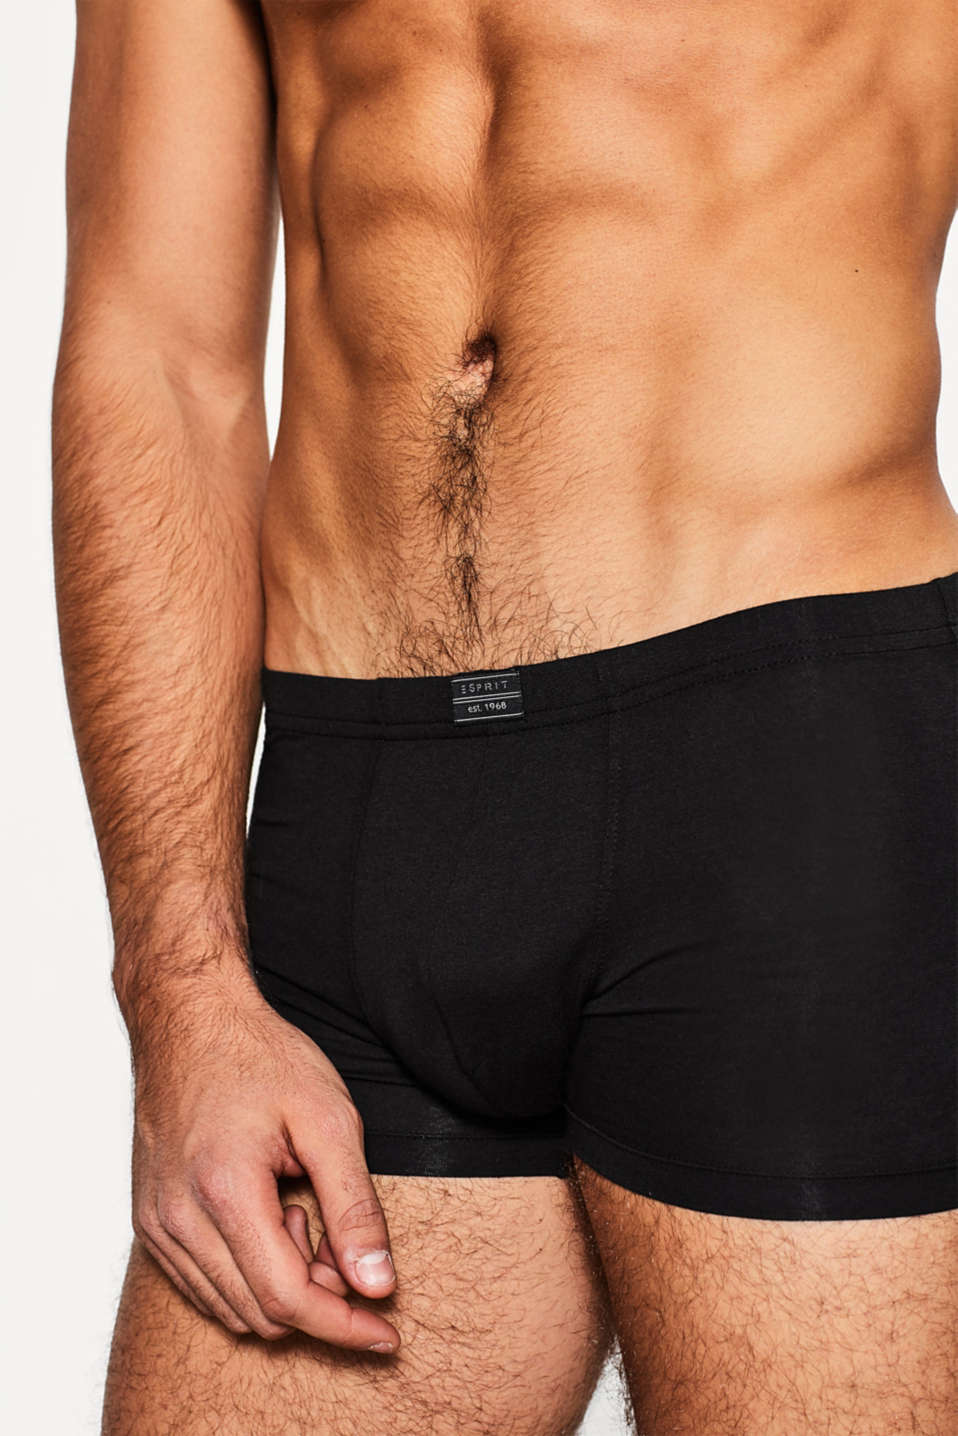 In a triple pack: Jersey shorts with a logo, BLACK, detail image number 2